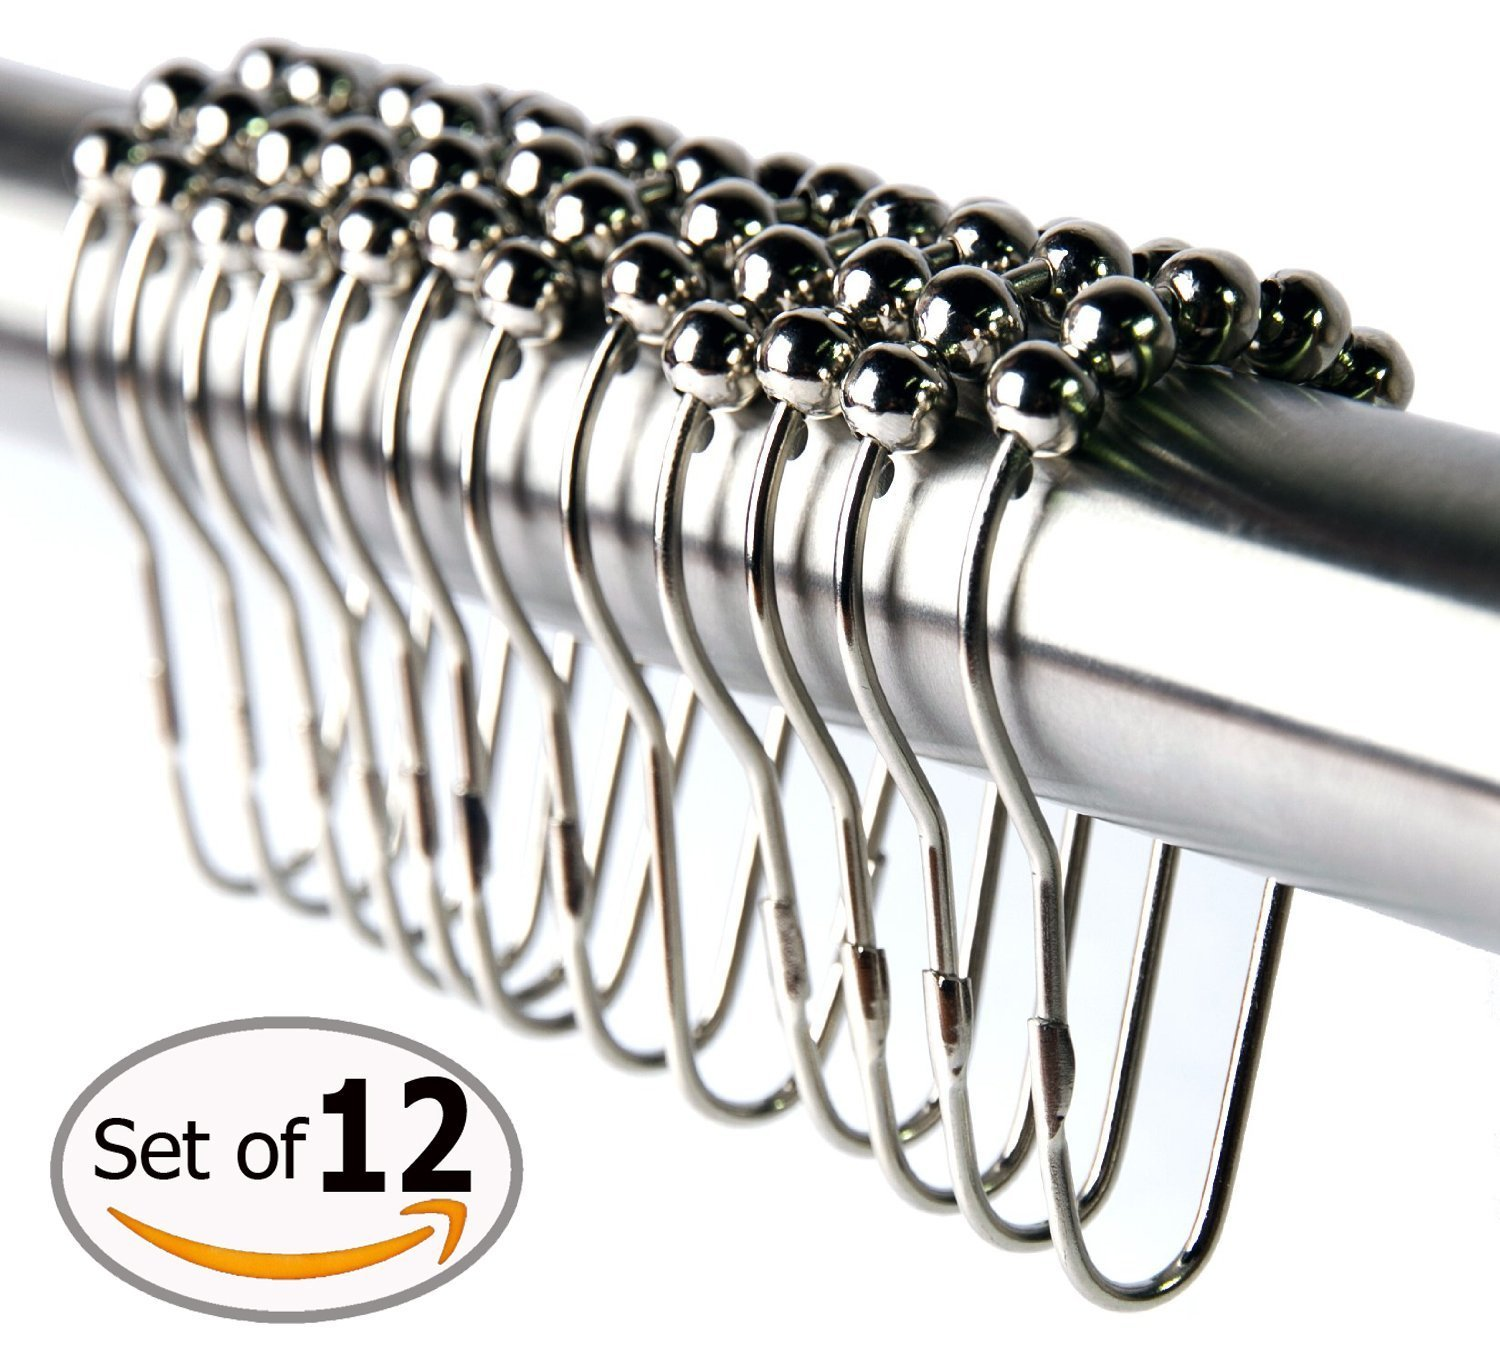 Shower Curtain Hooks 12 Piece Rings Stainless Steel Rustproof Friction Free Gliding 1 Sets of 12 Hooks , Value Pack